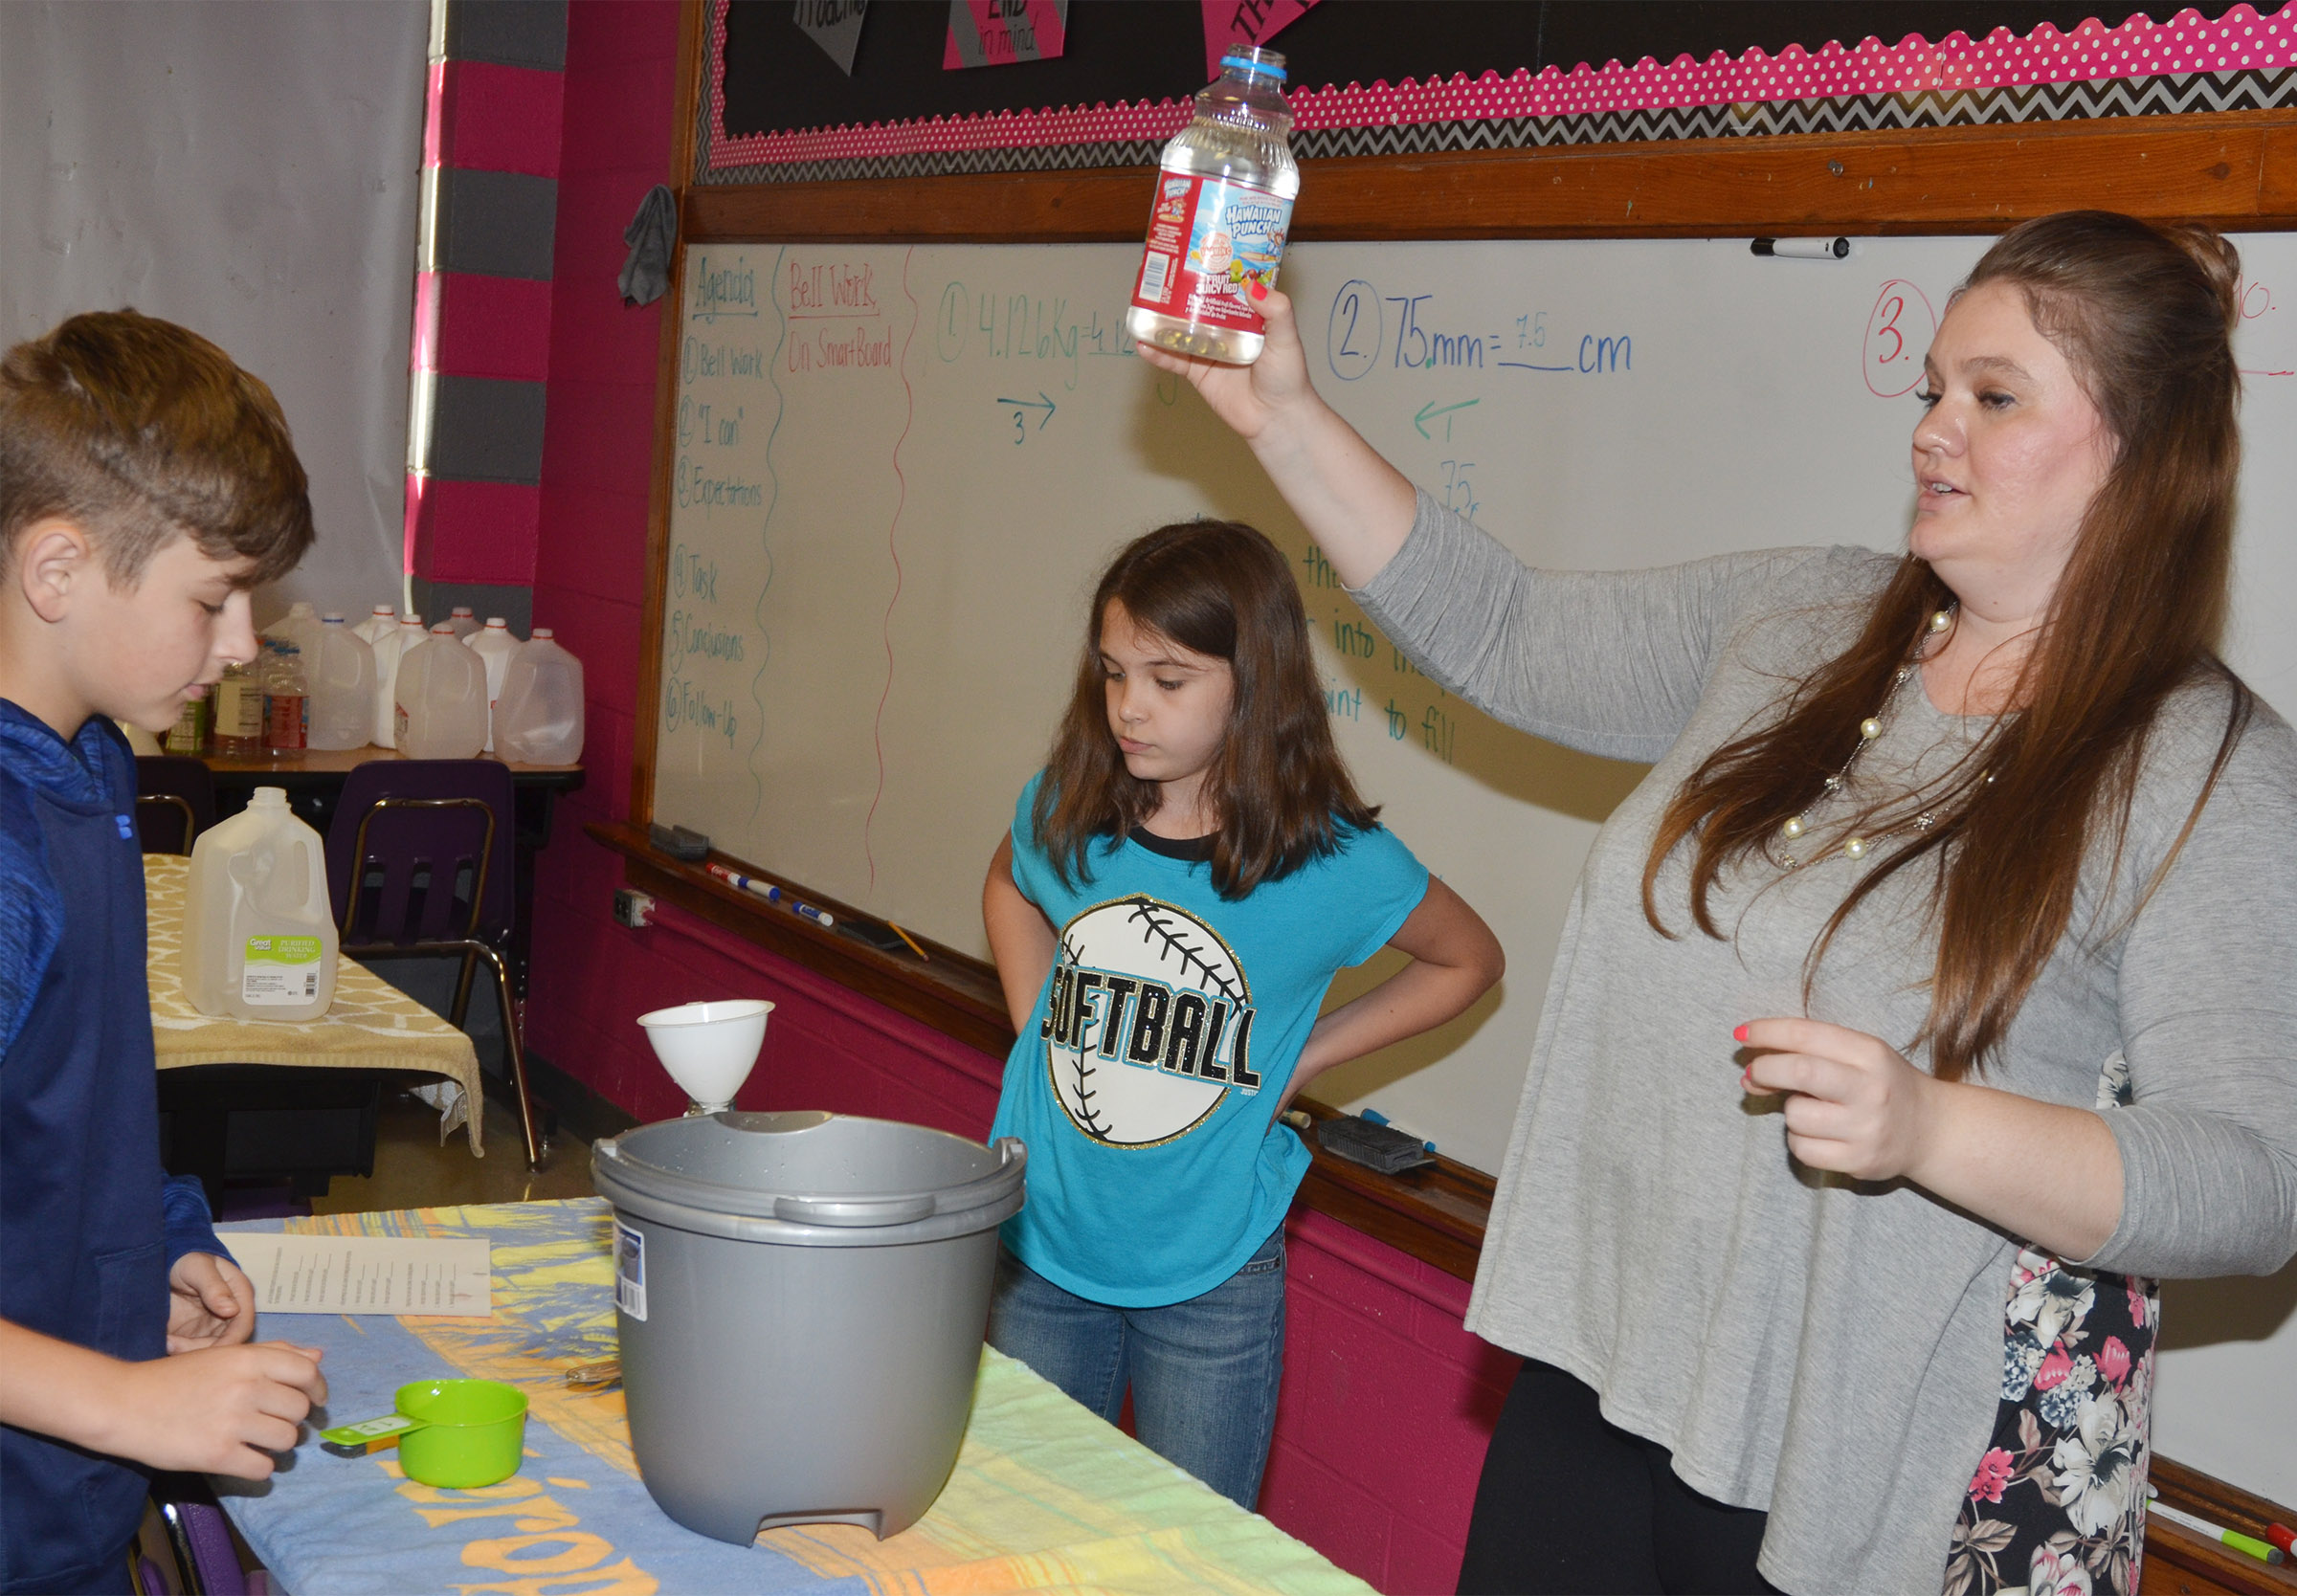 CMS fifth-grade teacher Ann Michael Tucker helps students Jaxon Sidebottom, at left, and Makayla Dudley measure liquids.